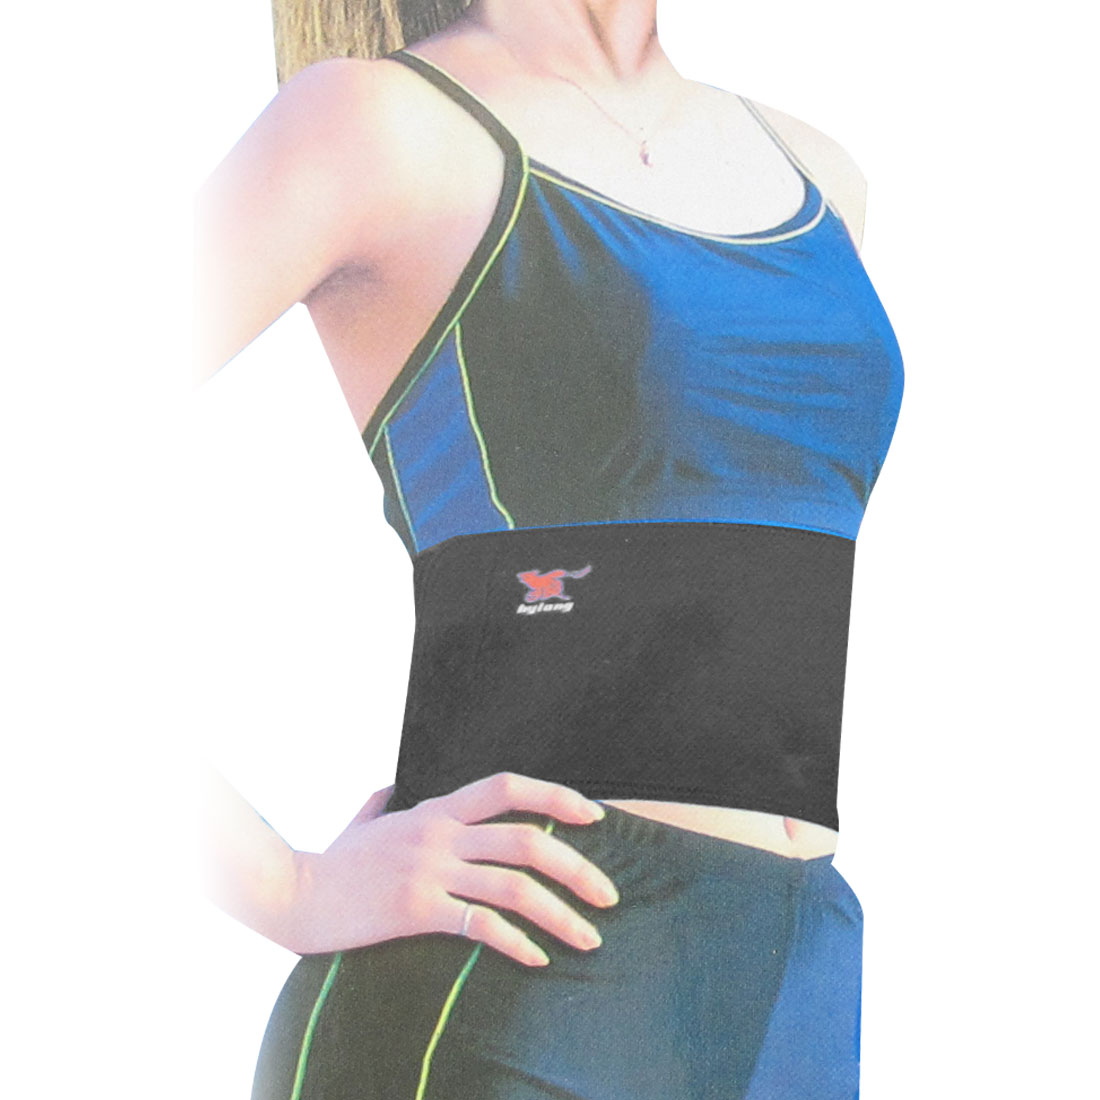 Breathable Compression Lose Weight Sports Waist Trimmer Support Belt Brace For Women